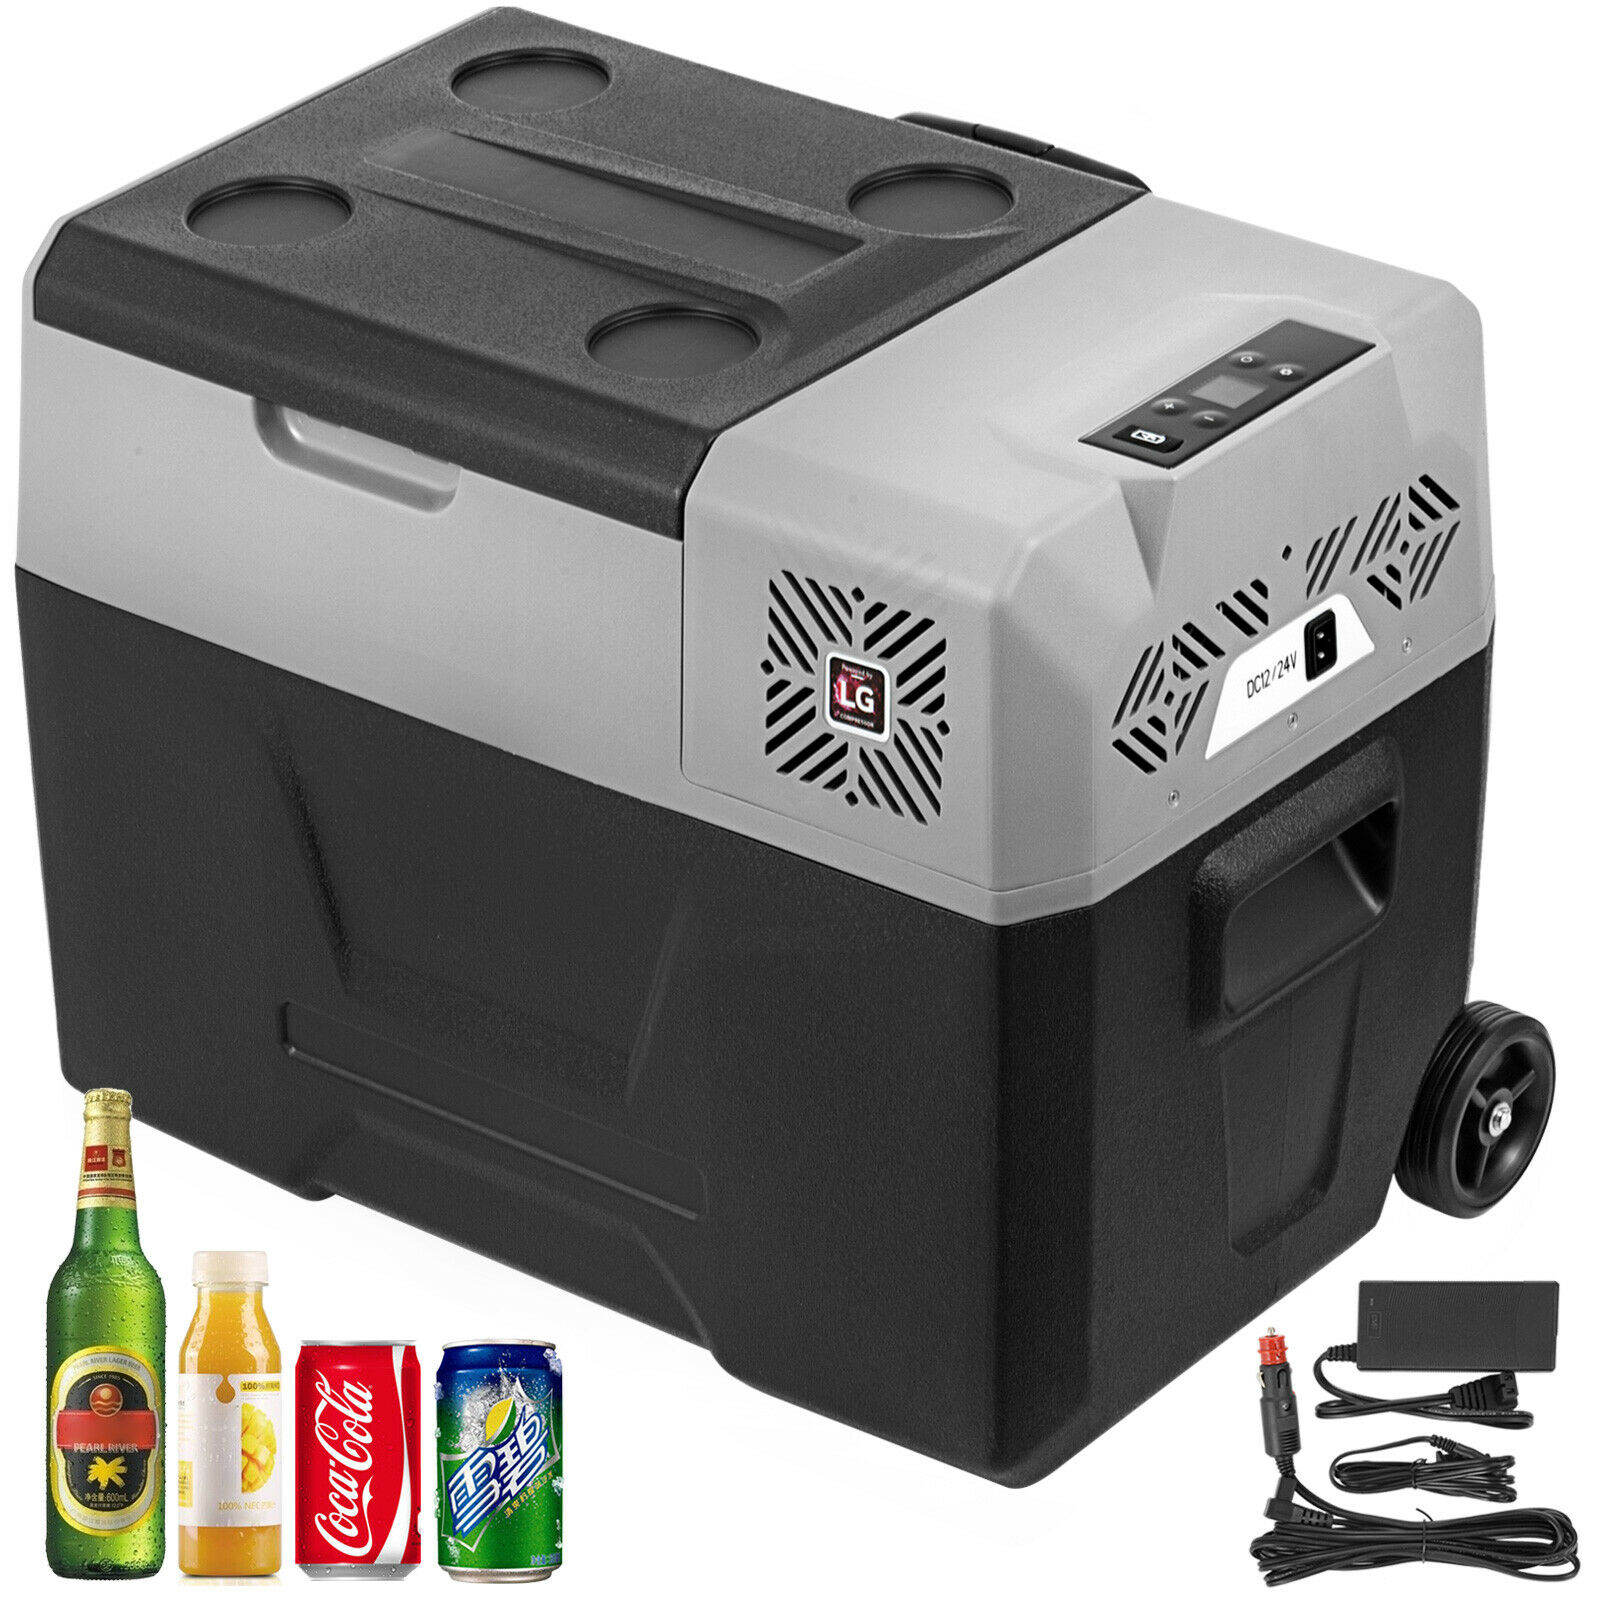 Compressor Portable Small Refrigerator Cooler Freezer Home And Car Vehicular